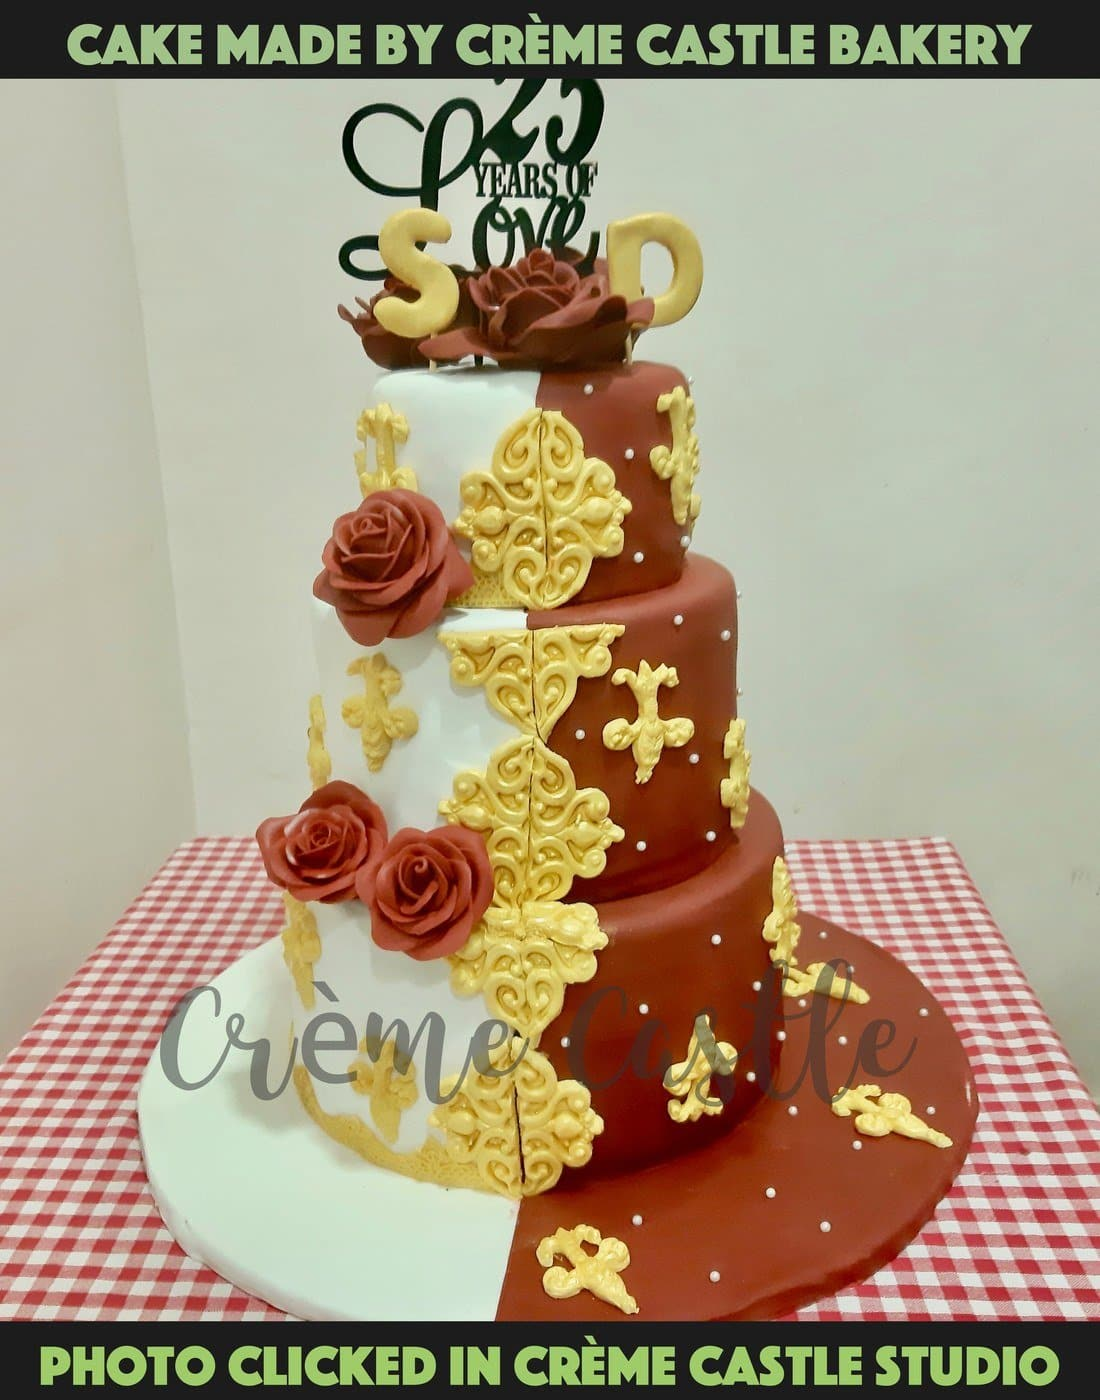 A three tier cake in the form of a saree dripping on the cake from the top. One of a kind design